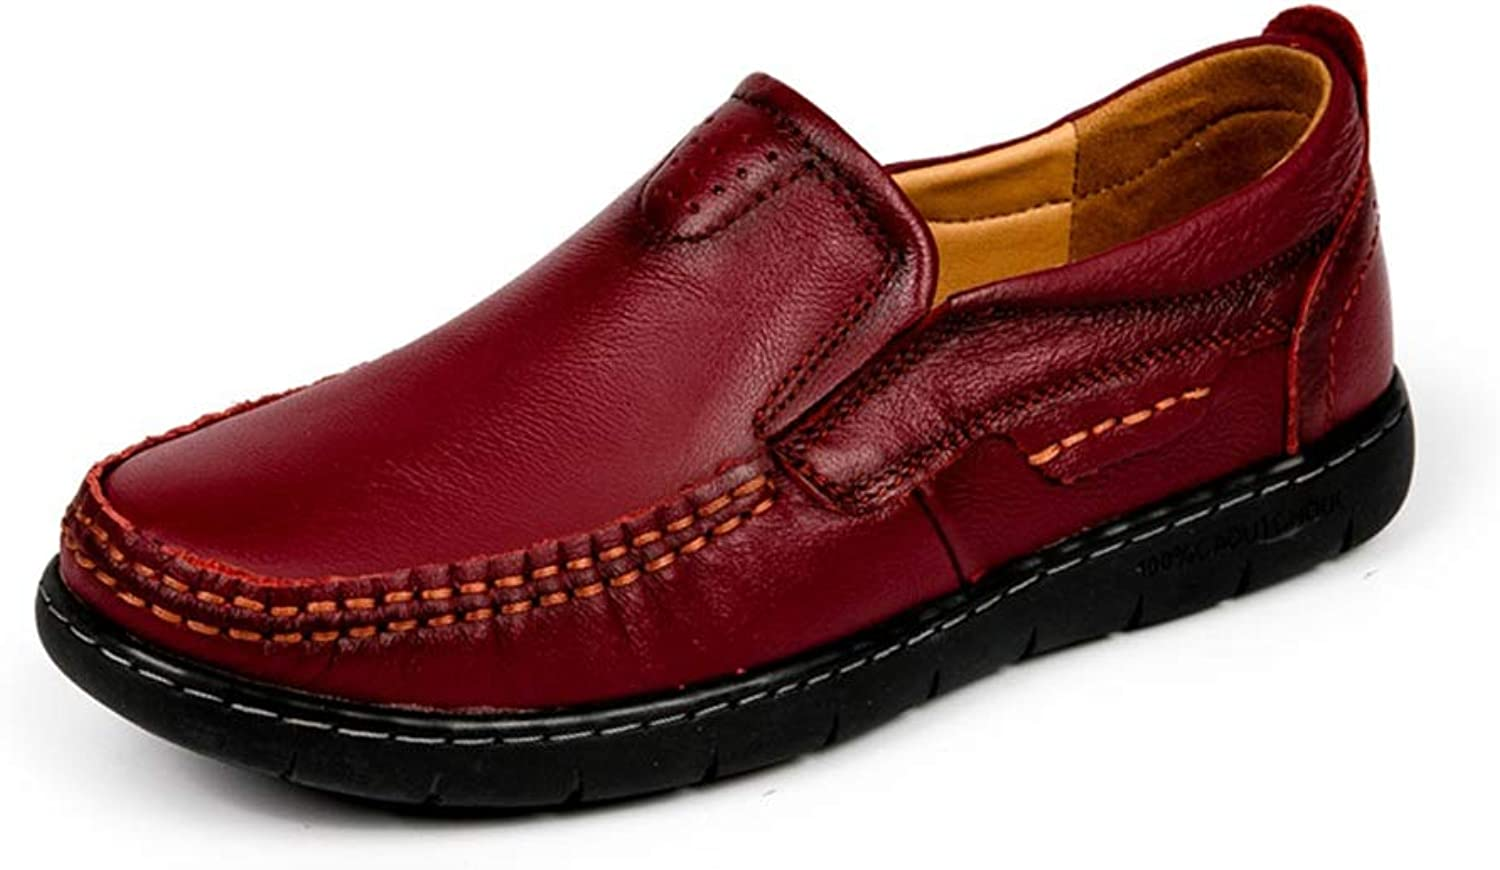 Best-choise Women's Soft Comfortable Genuine Leather Penny Loafers Lightweight Anti-Slip Flat shoes Vegan Lined Round Toe Slip-on Shining (color   Claret-red, Size   7.5 M US)